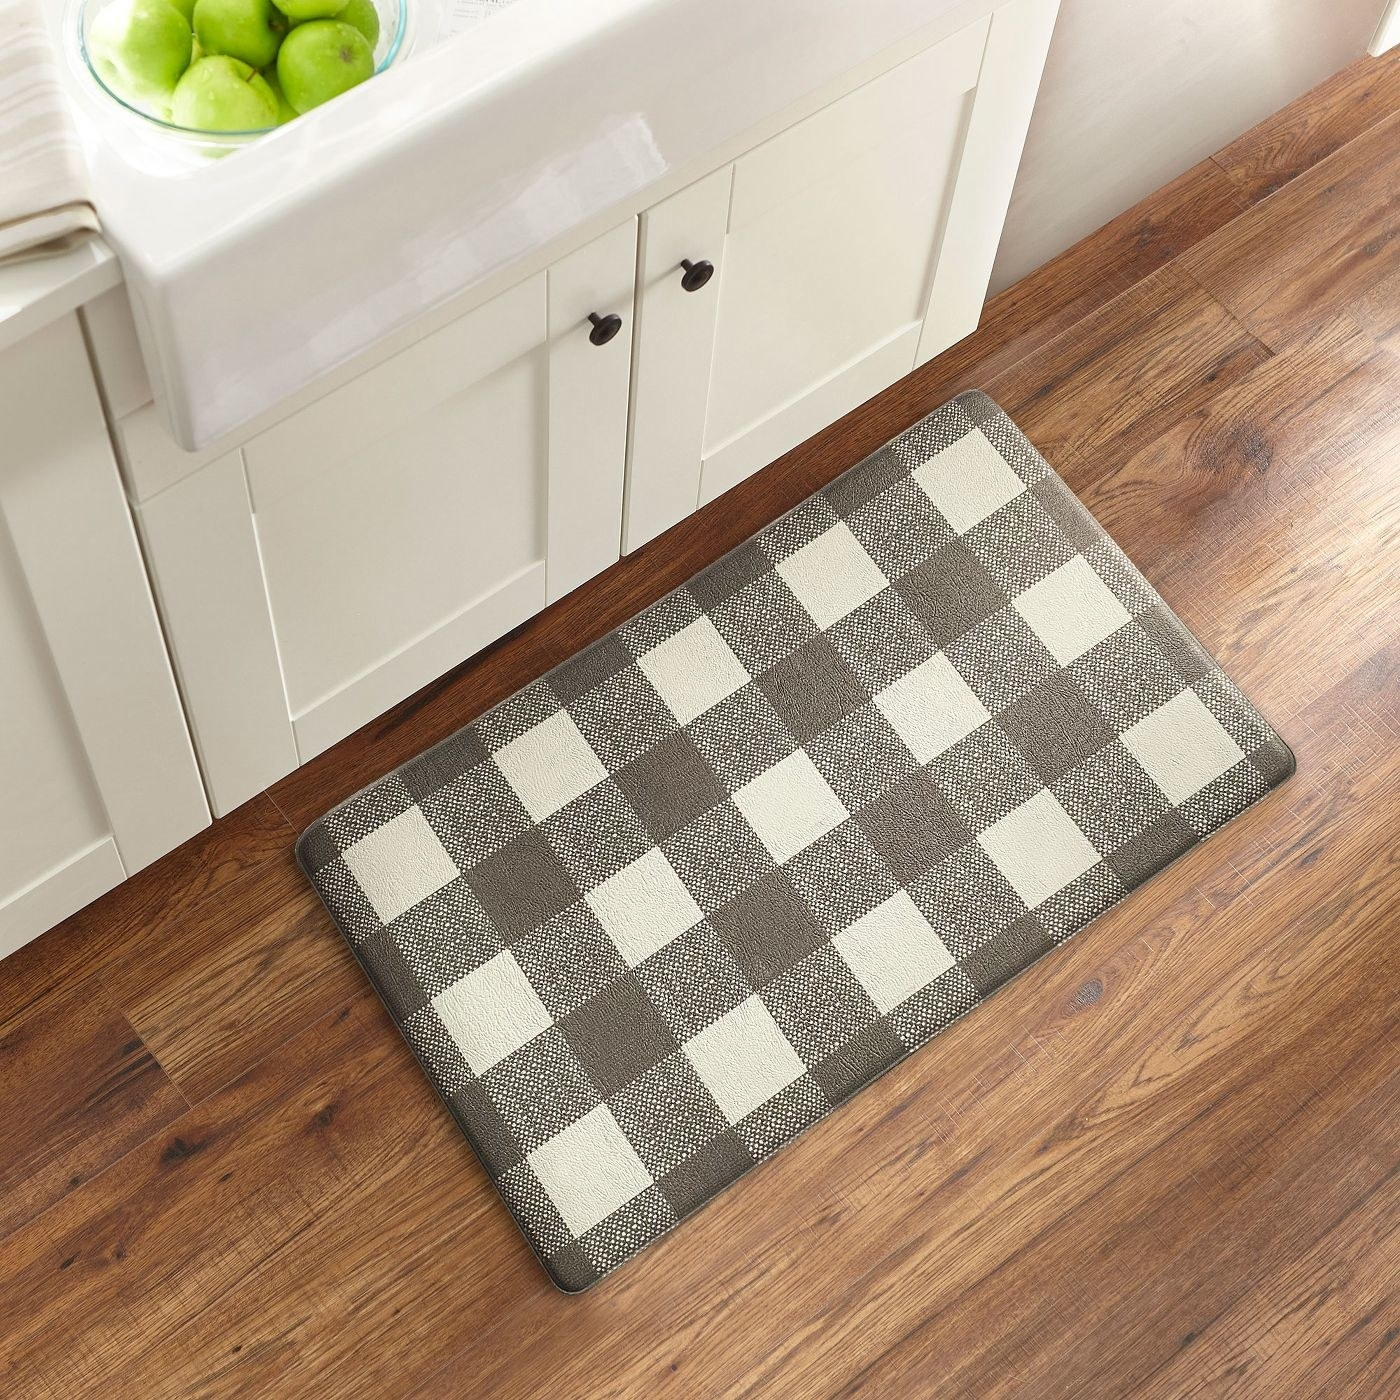 the brown gingham mat in front of a sink